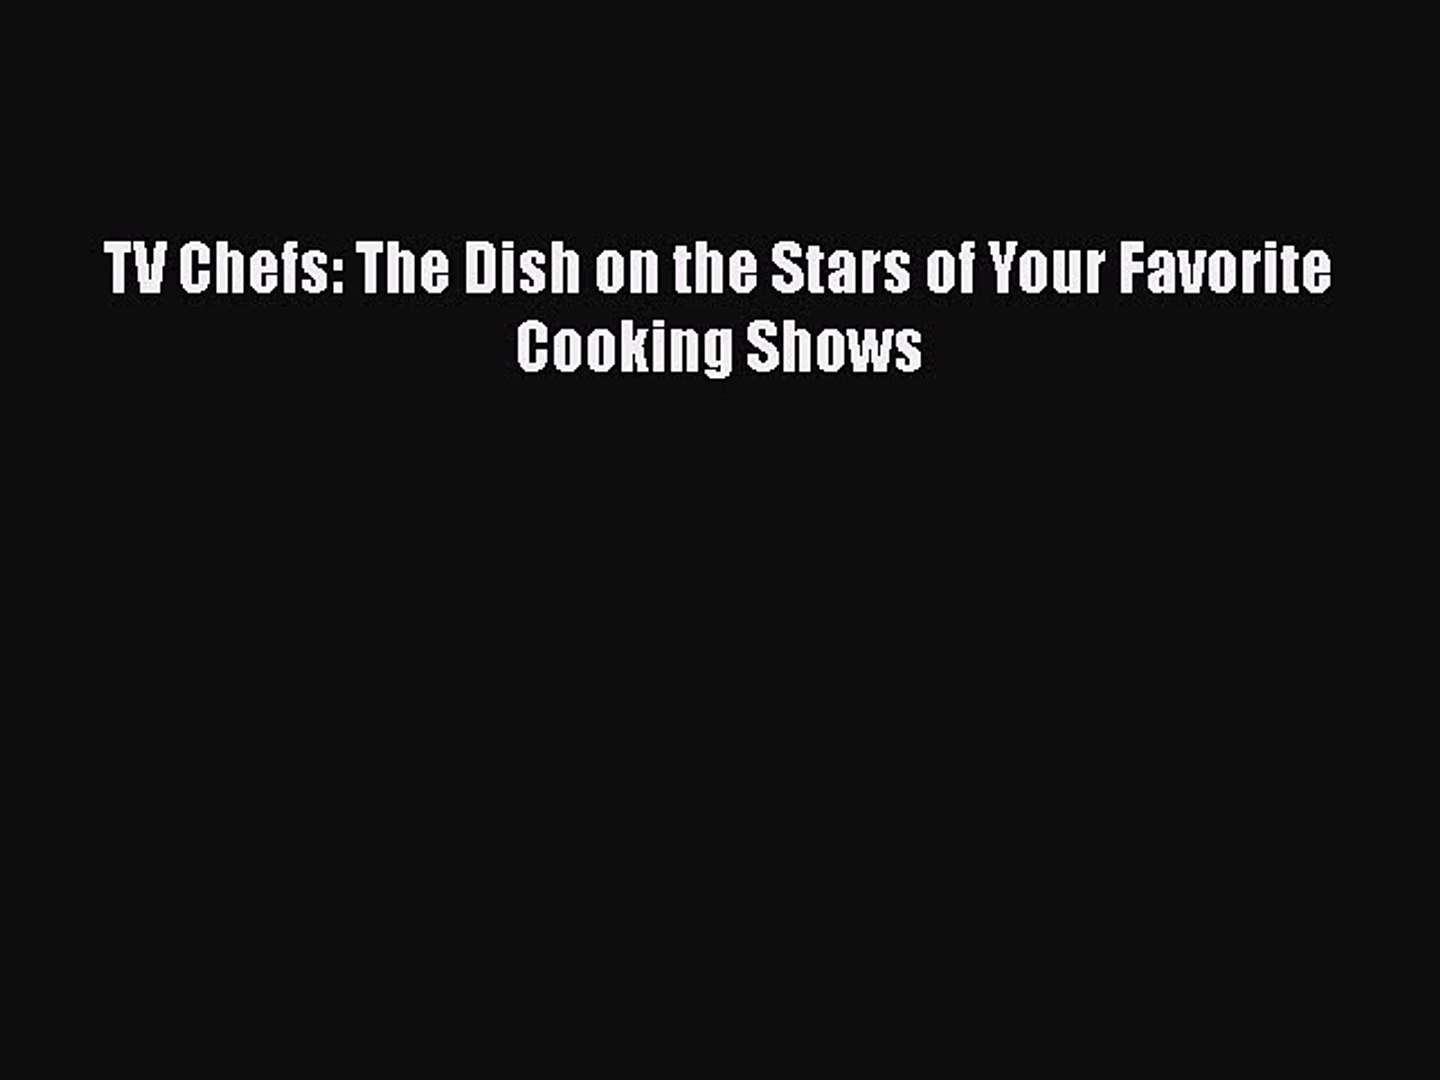 [PDF] TV Chefs: The Dish on the Stars of Your Favorite Cooking Shows [Read] Full Ebook